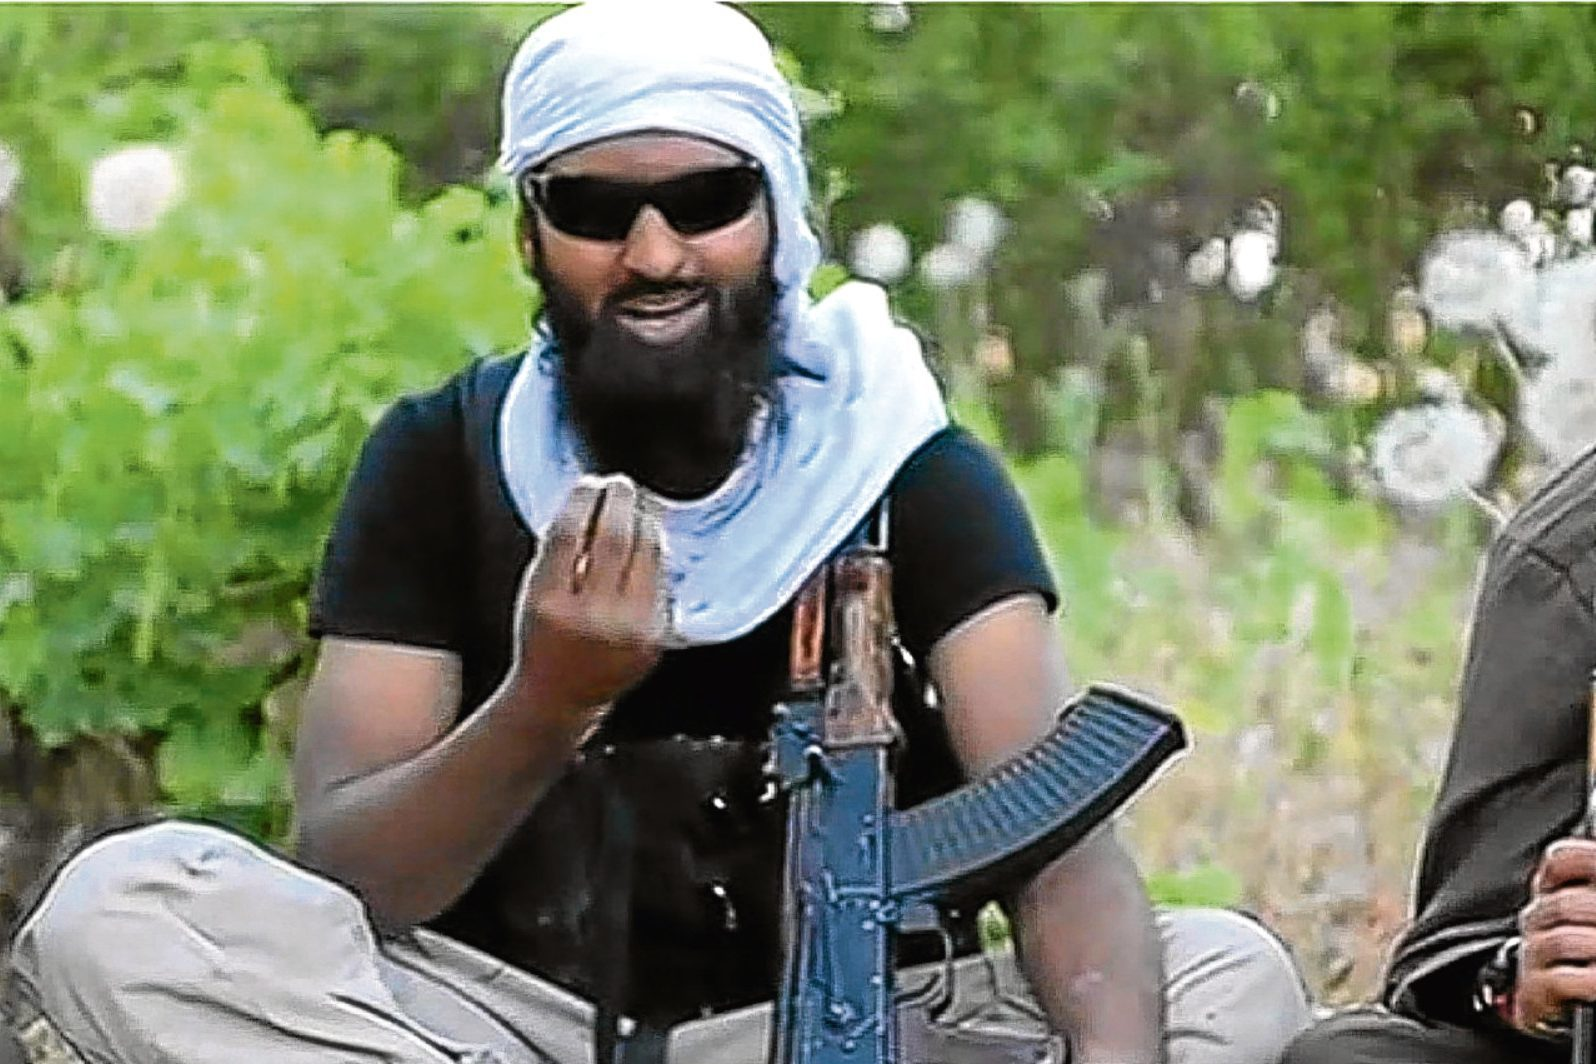 Isis Jihadi Ruhul Amin (aka Abdul Raqib Amin) grew up in Aberdeen before pursuing radicalism